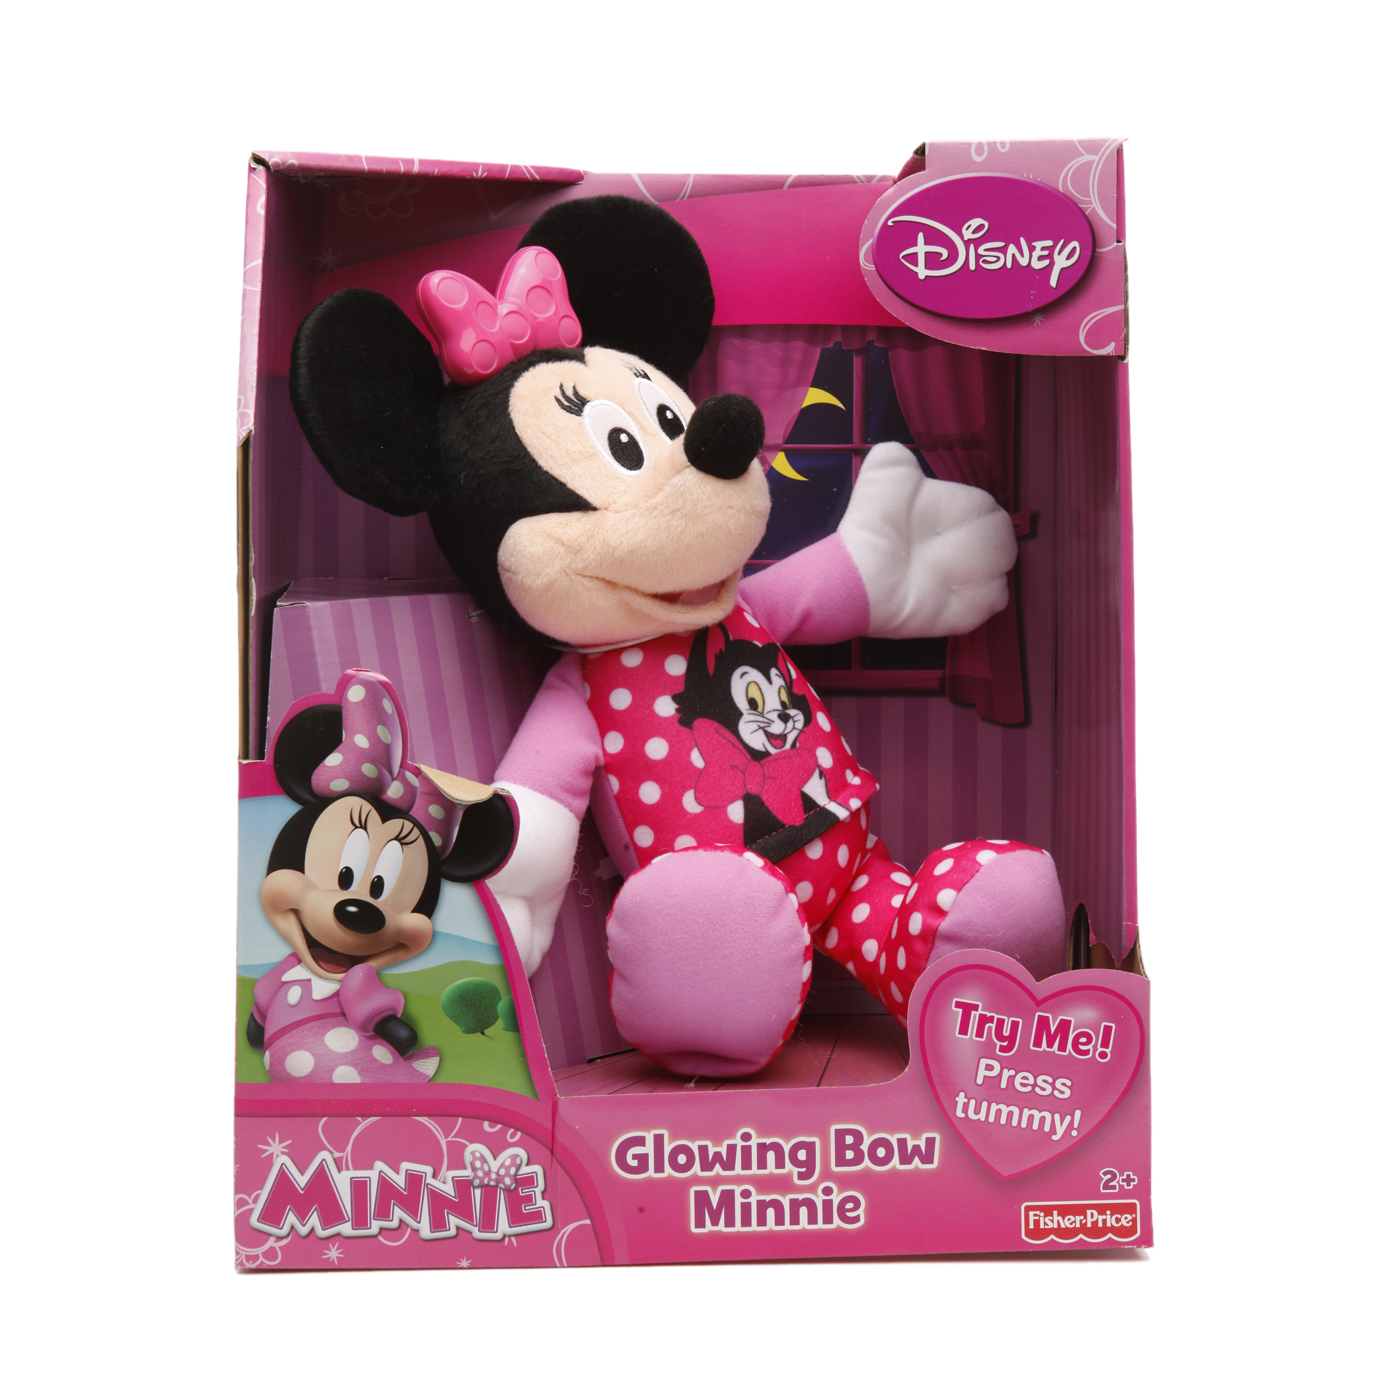 Fisher Price Minnie Mouse Bow-Tique Glowing Bow Minnie.